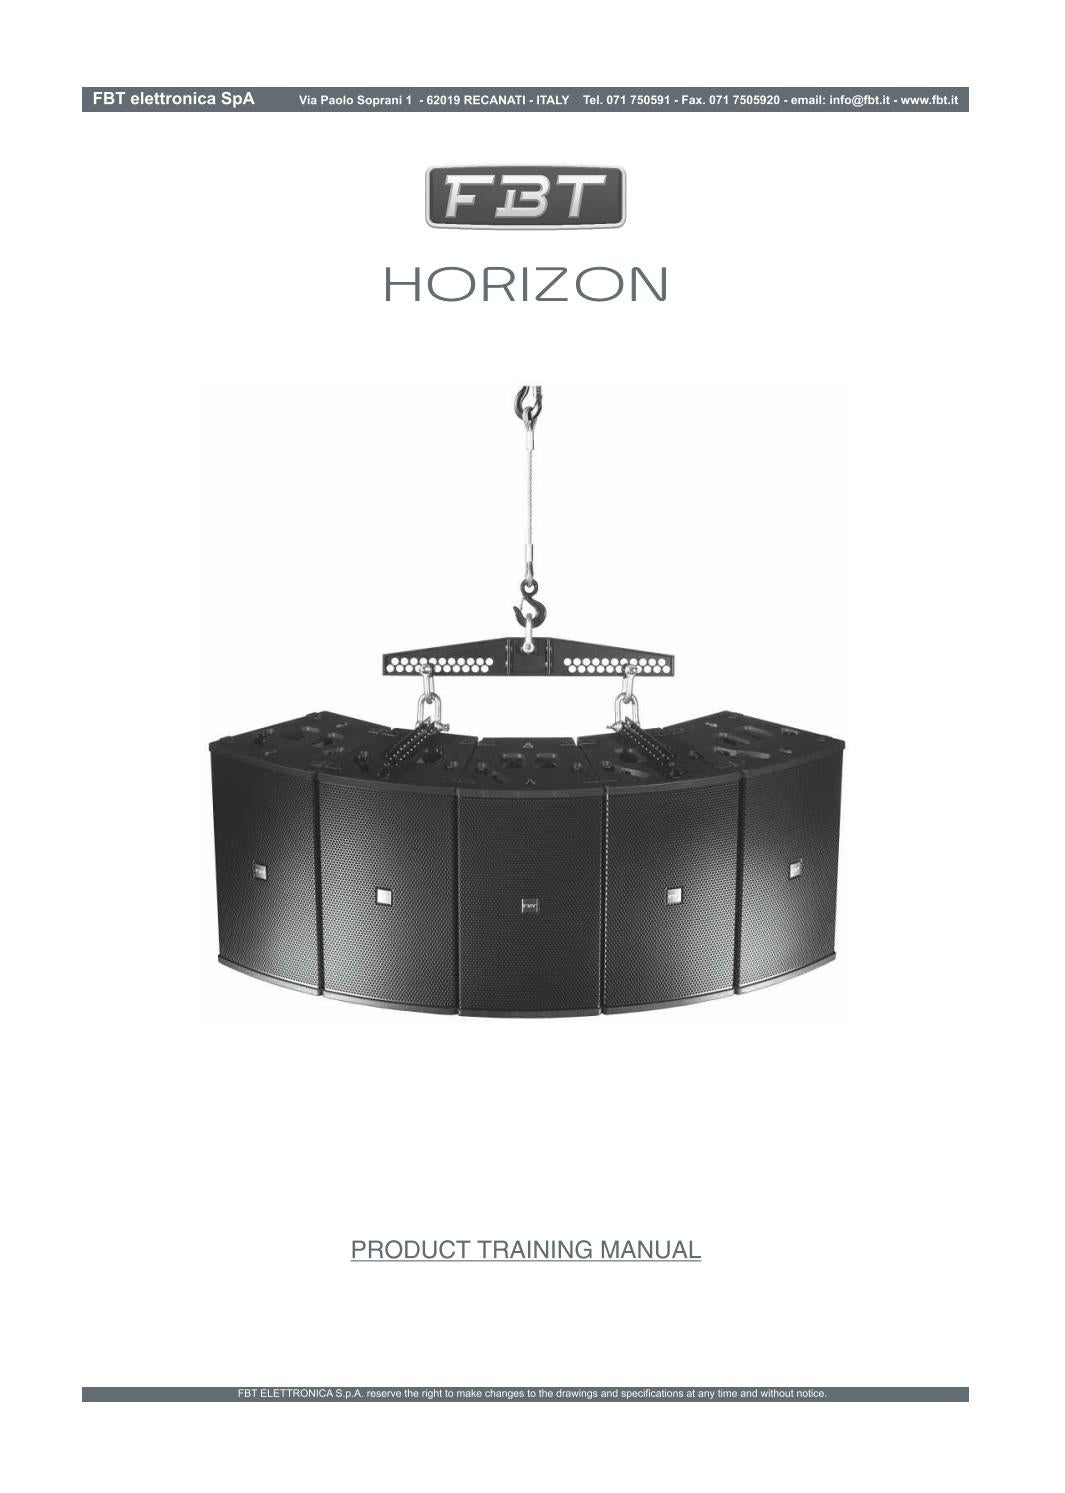 Elettronica Spa Fbt Horizon Product Training Manual By Fbt Elettronica S P A Issuu